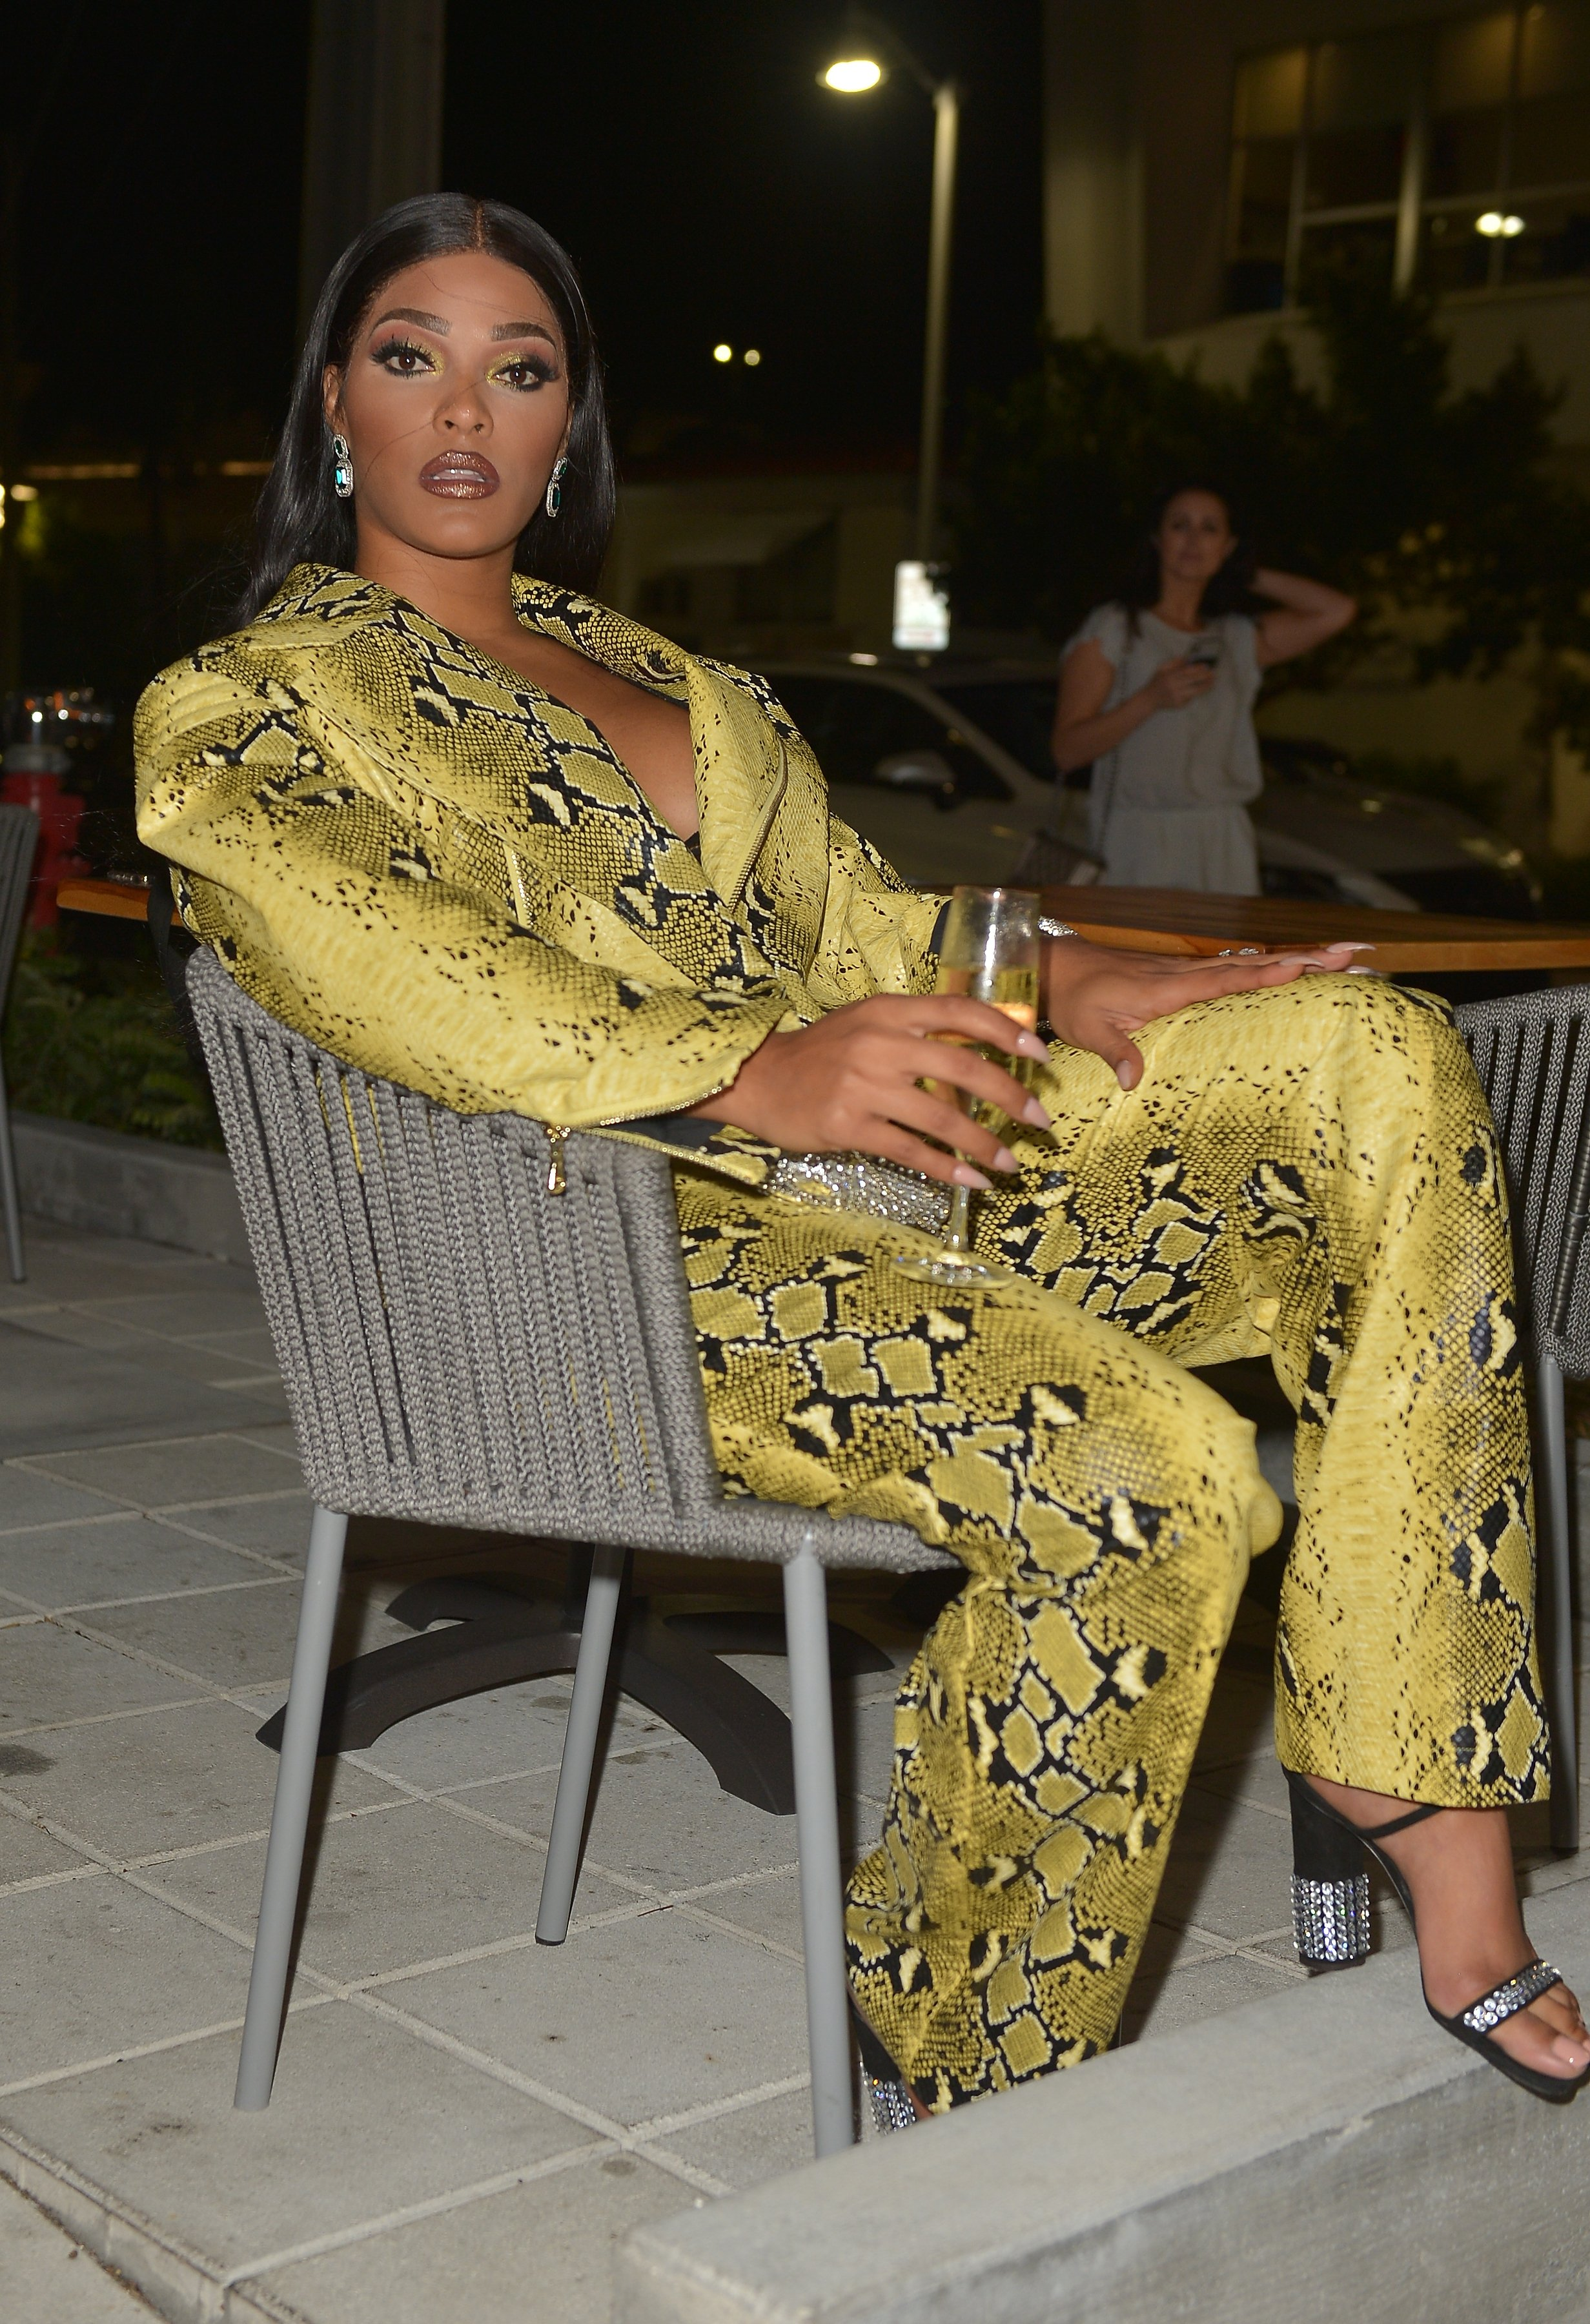 Joseline Hernandez at Delicious Raw restaurant on February 27, 2019 | Photo: Getty Images